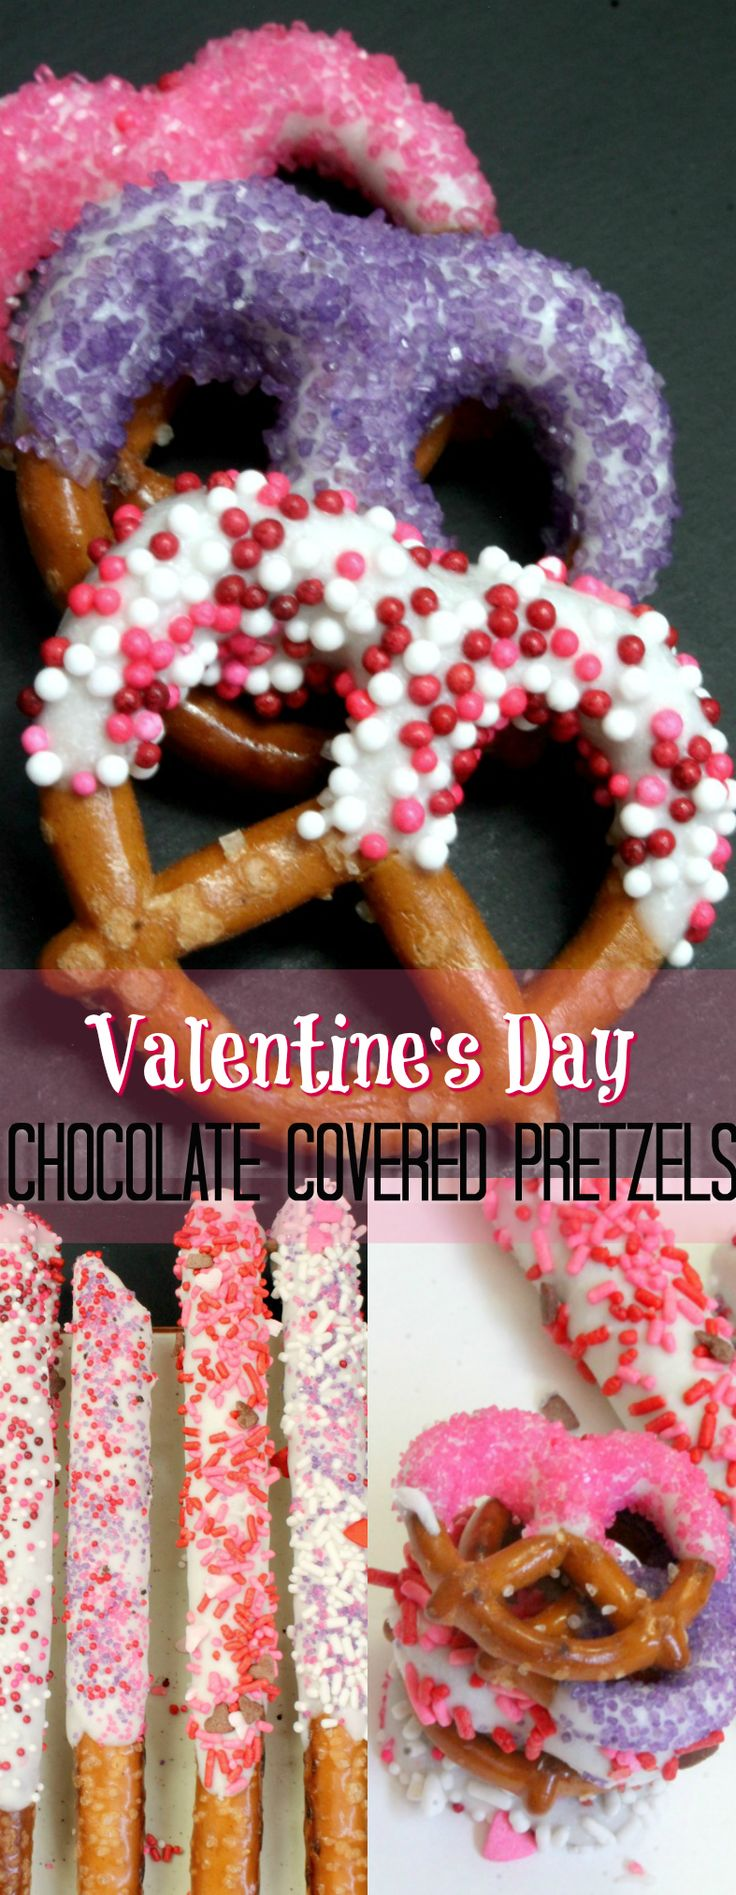 Best 20 chocolate dipped pretzels ideas on pinterest for Kid friendly valentine recipes